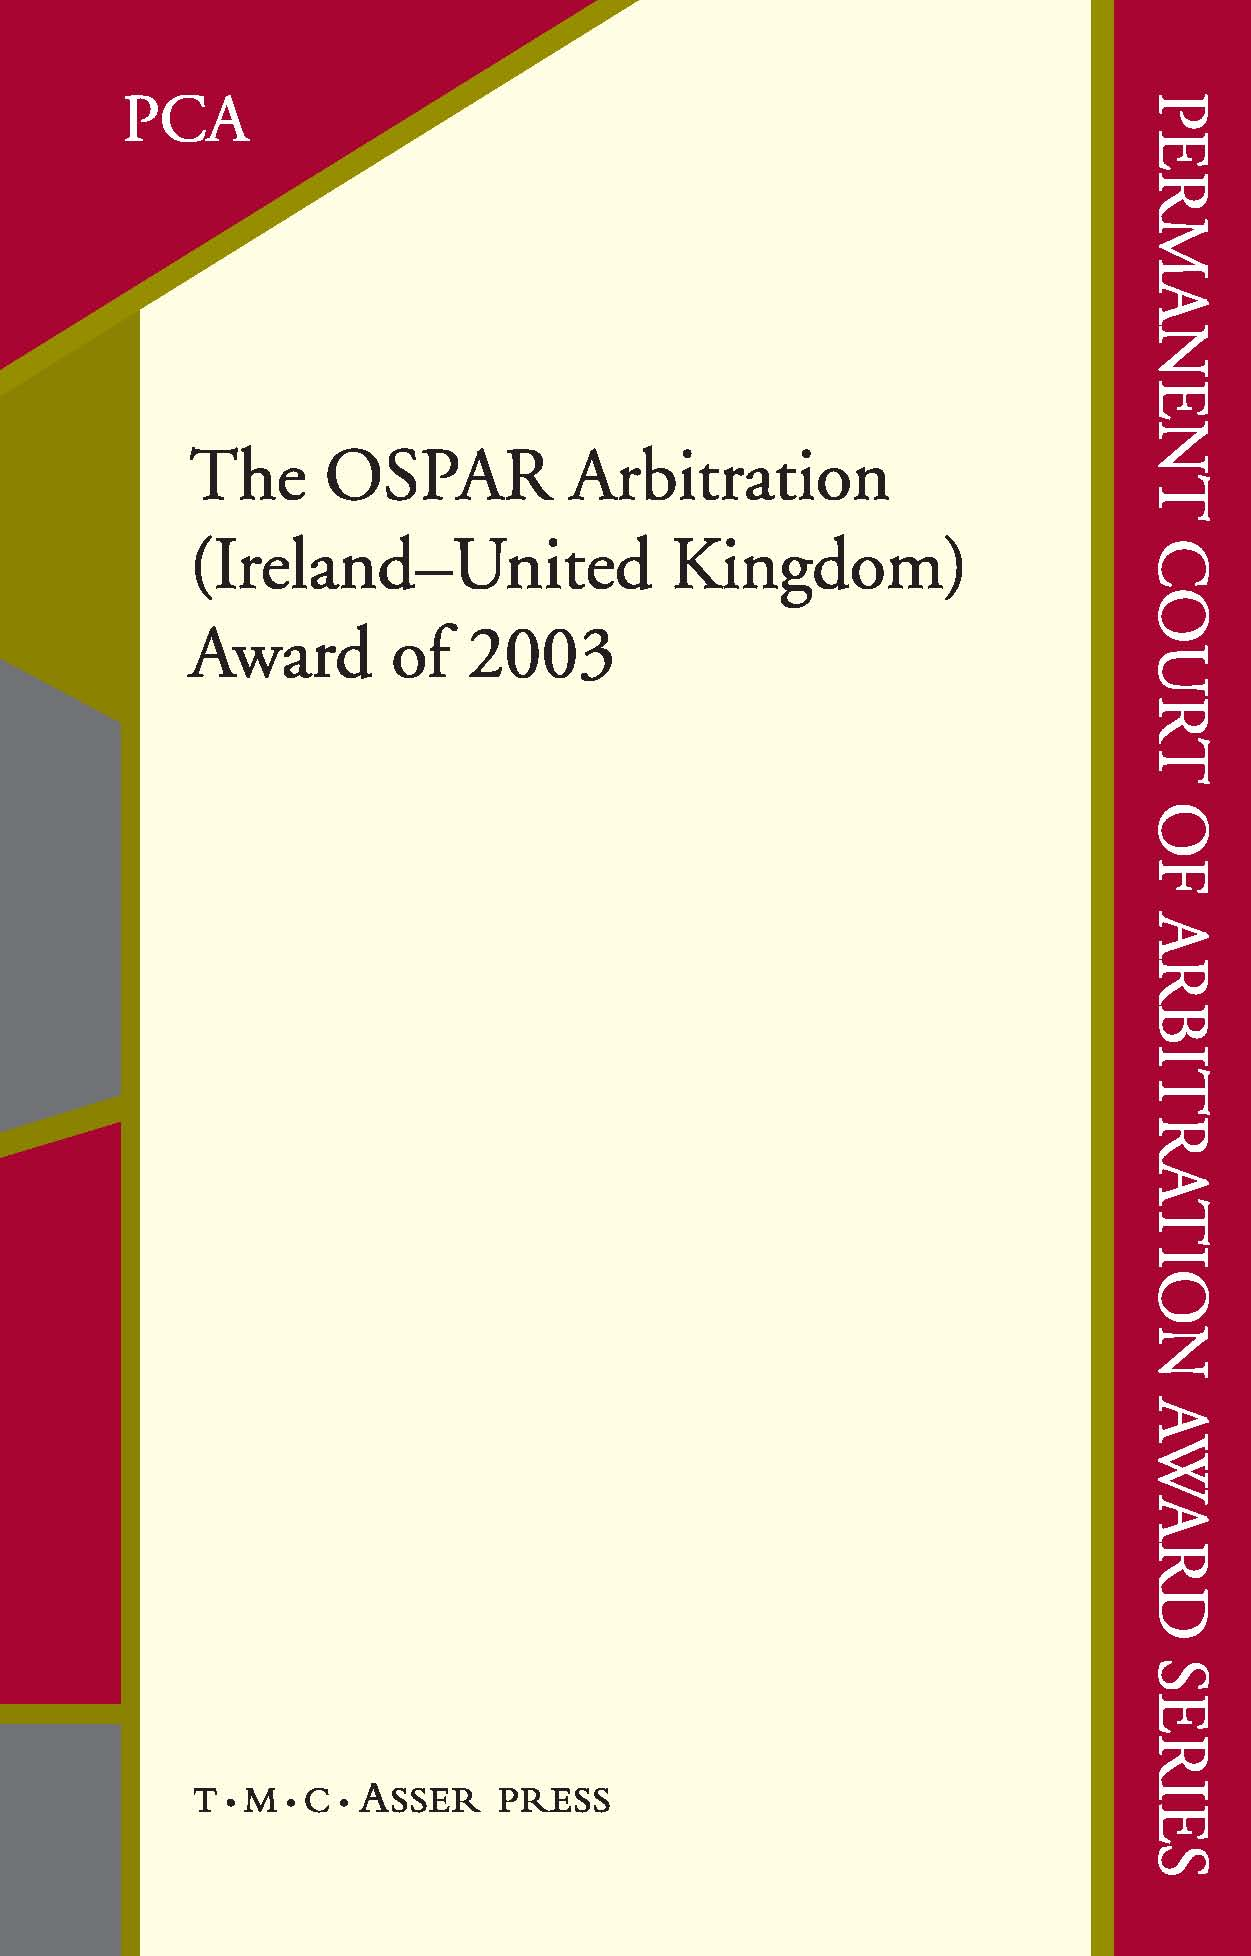 The OSPAR Arbitration (Ireland – United Kingdom) Award of 2003